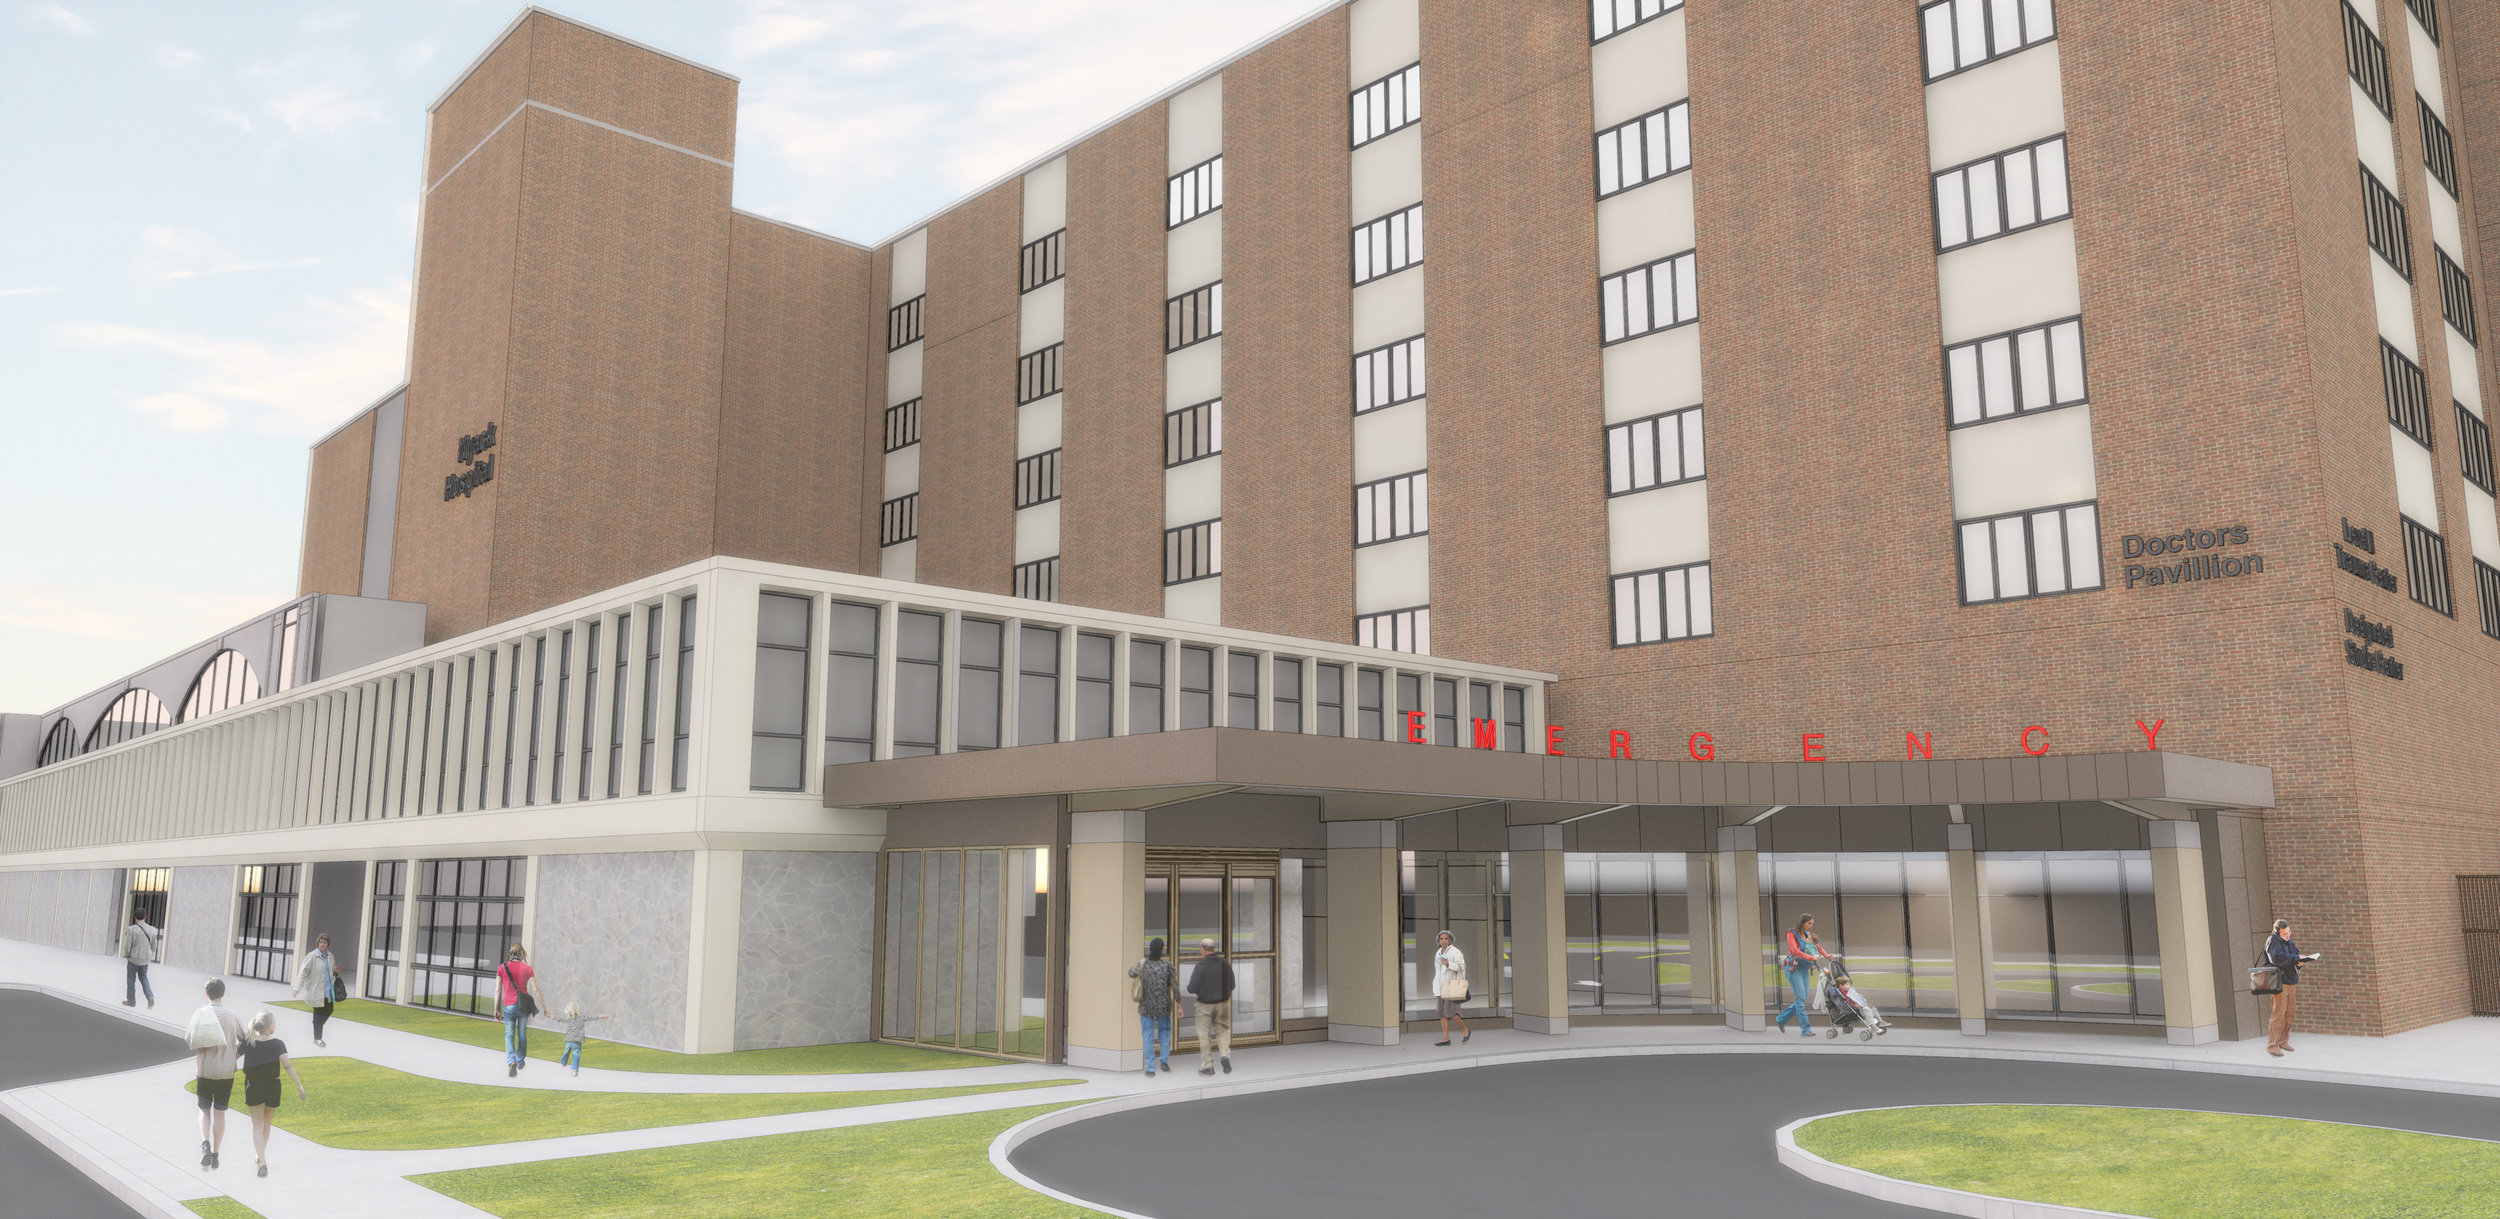 Rendering of Nyack ED  currently being constructed in Nyack, New York